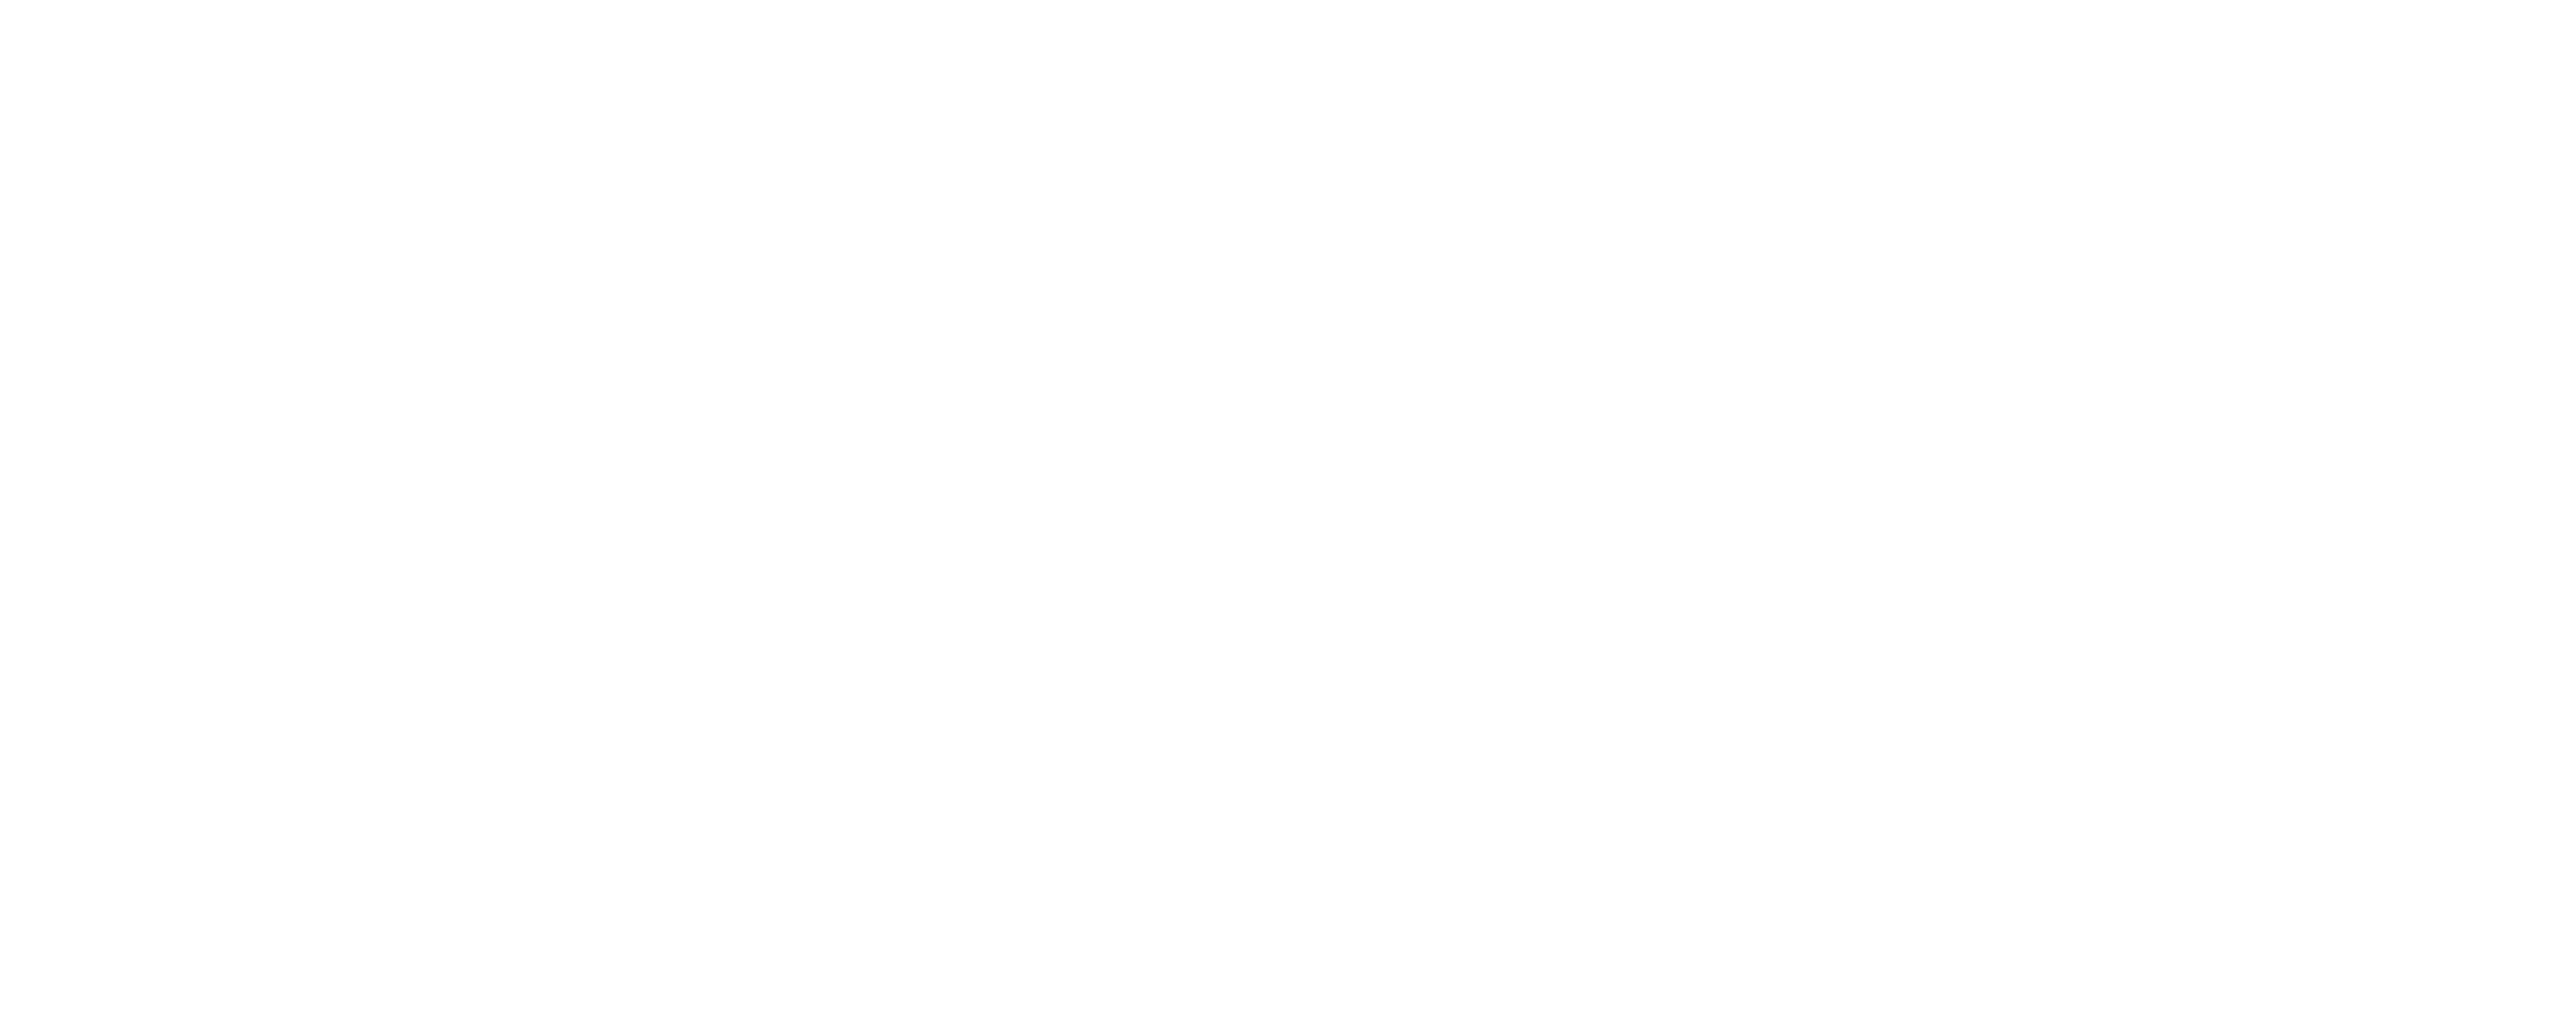 Lace design png. Black and white product